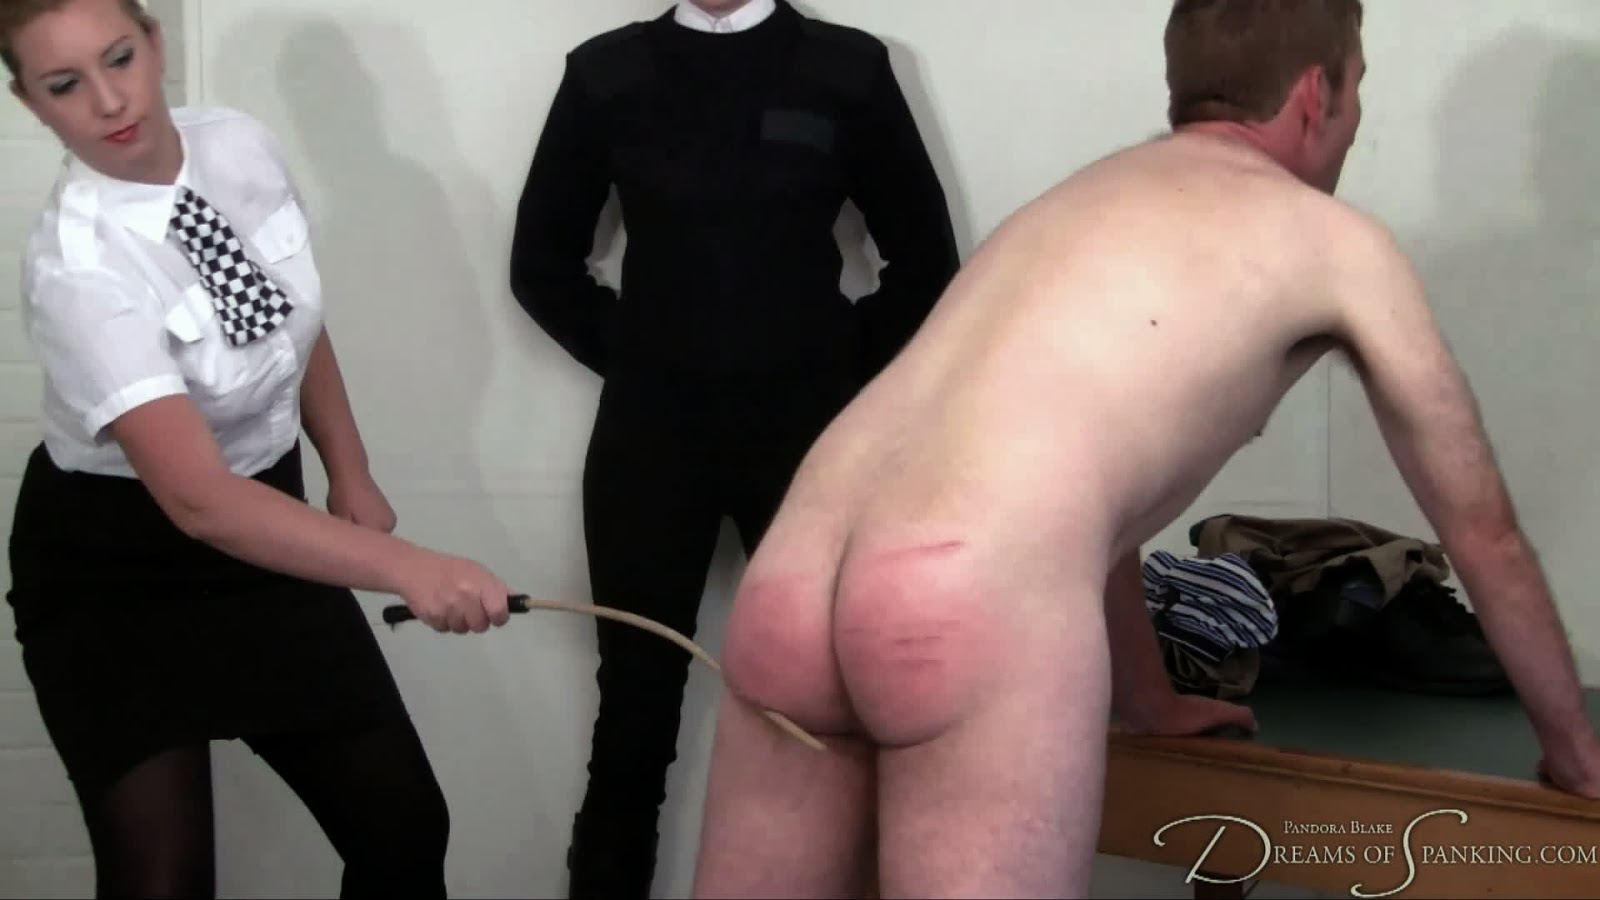 erotic judicial caning stories